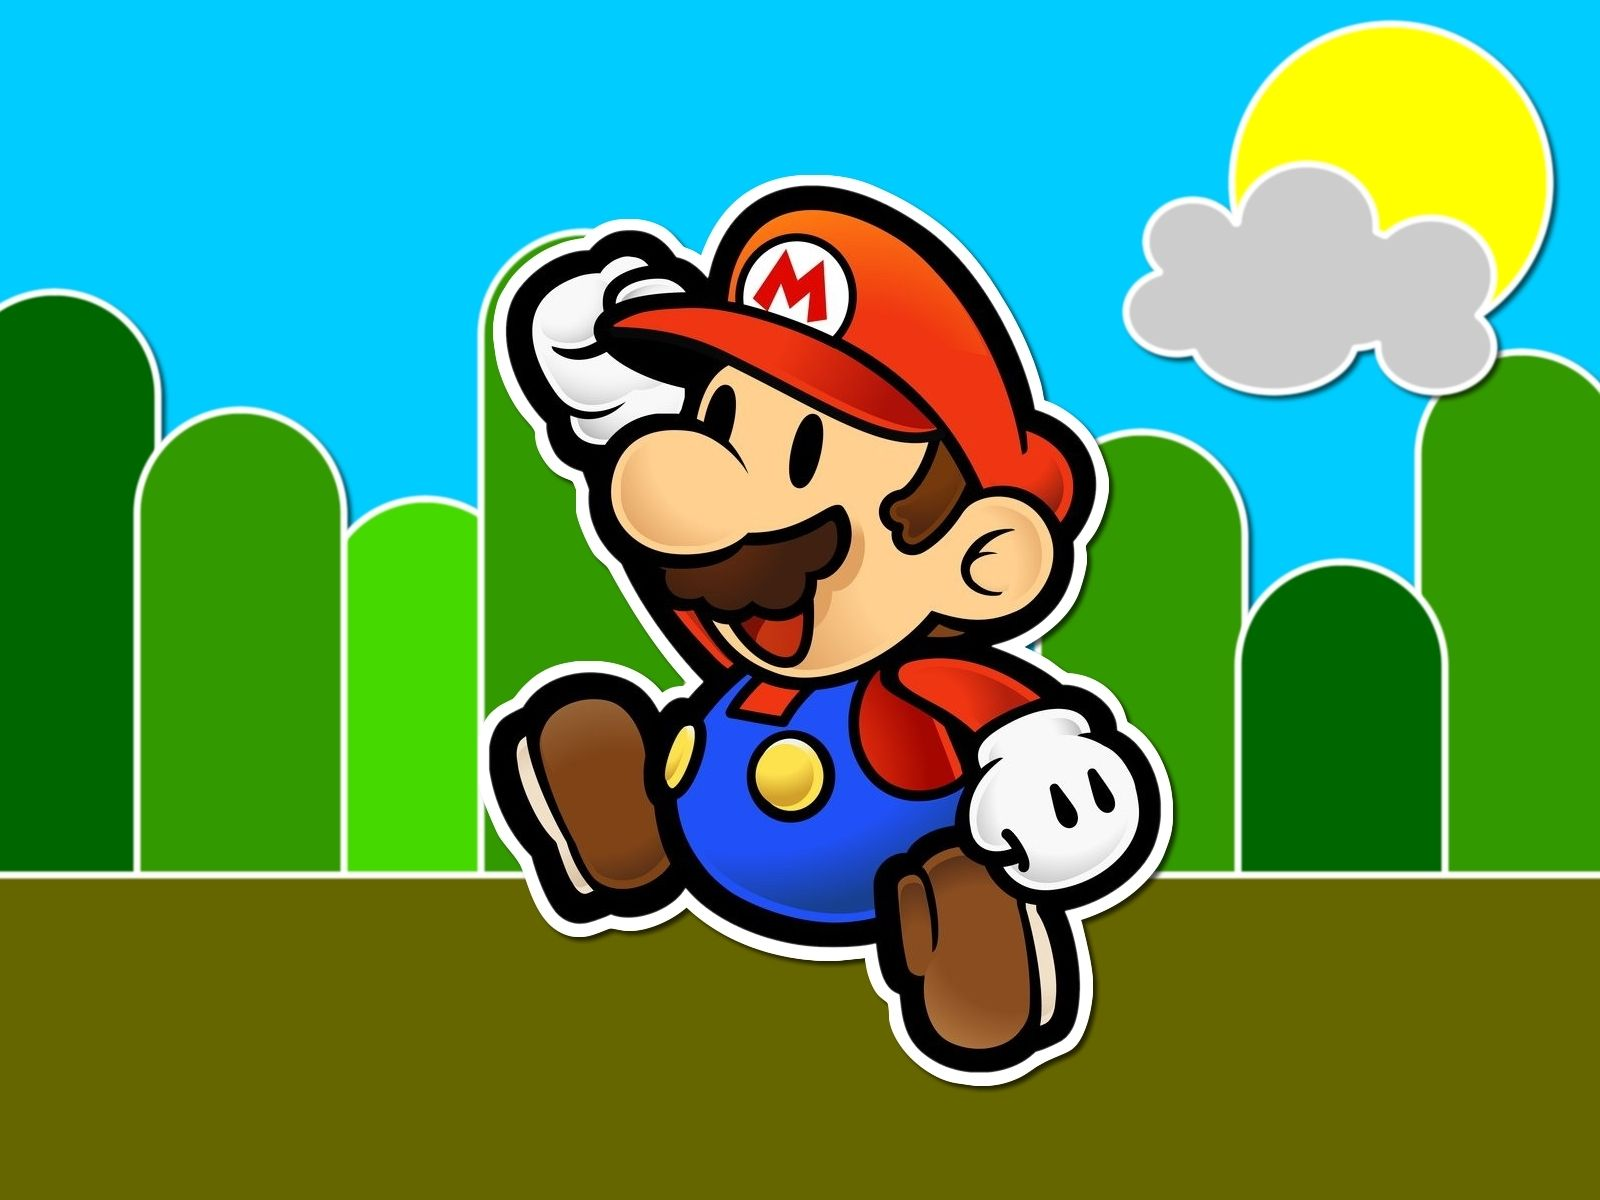 Mario Wallpapers Hd Posted By Samantha Peltier